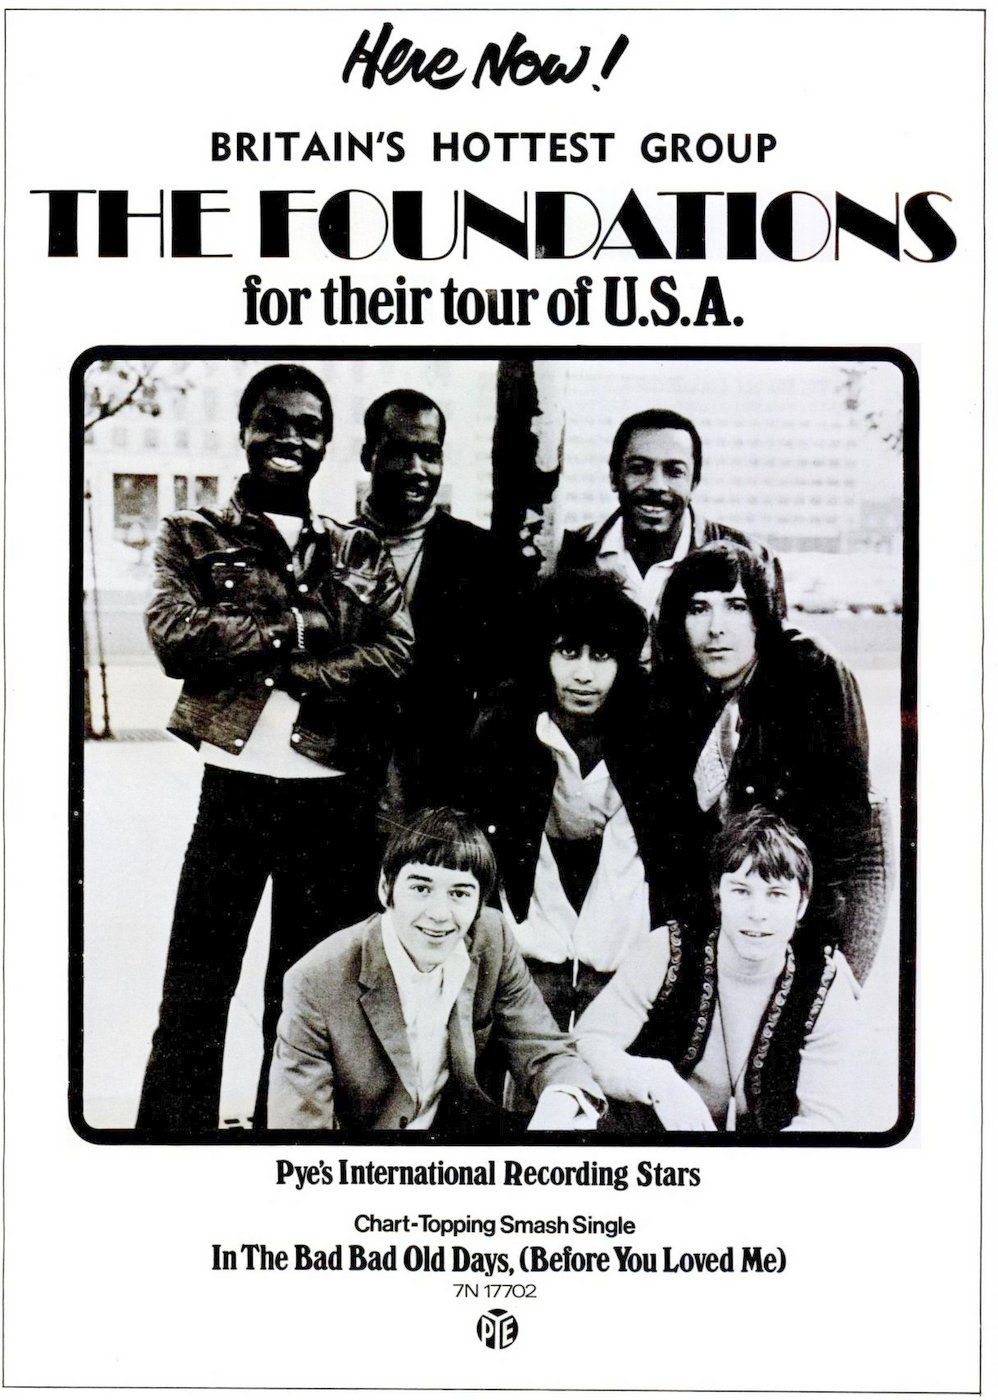 The Foundations US tour - 1969